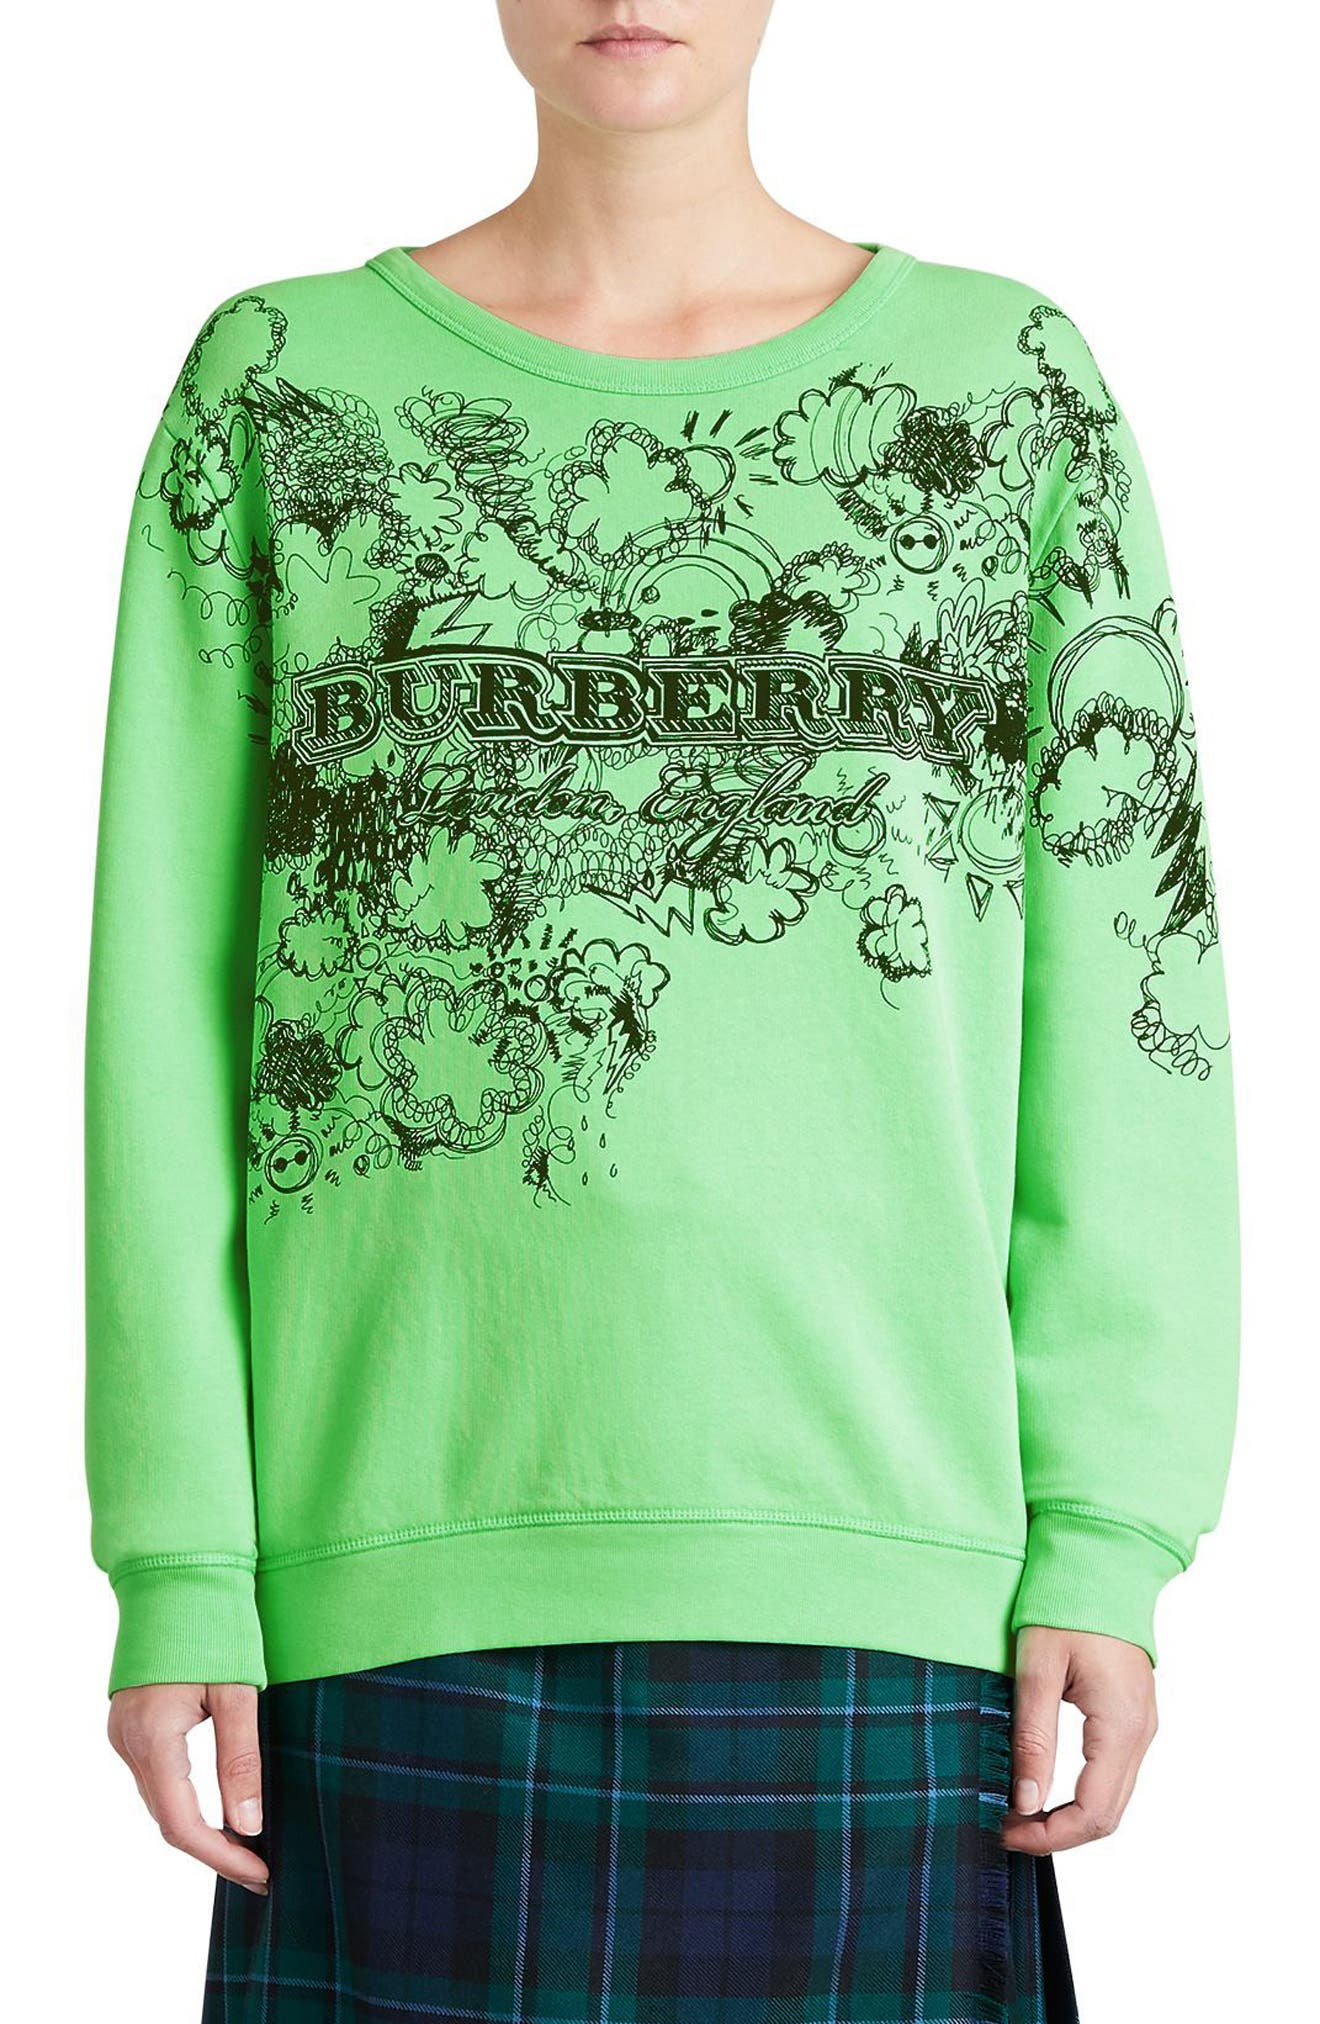 Madon Print Sweatshirt,                             Main thumbnail 1, color,                             Bright Apple Green